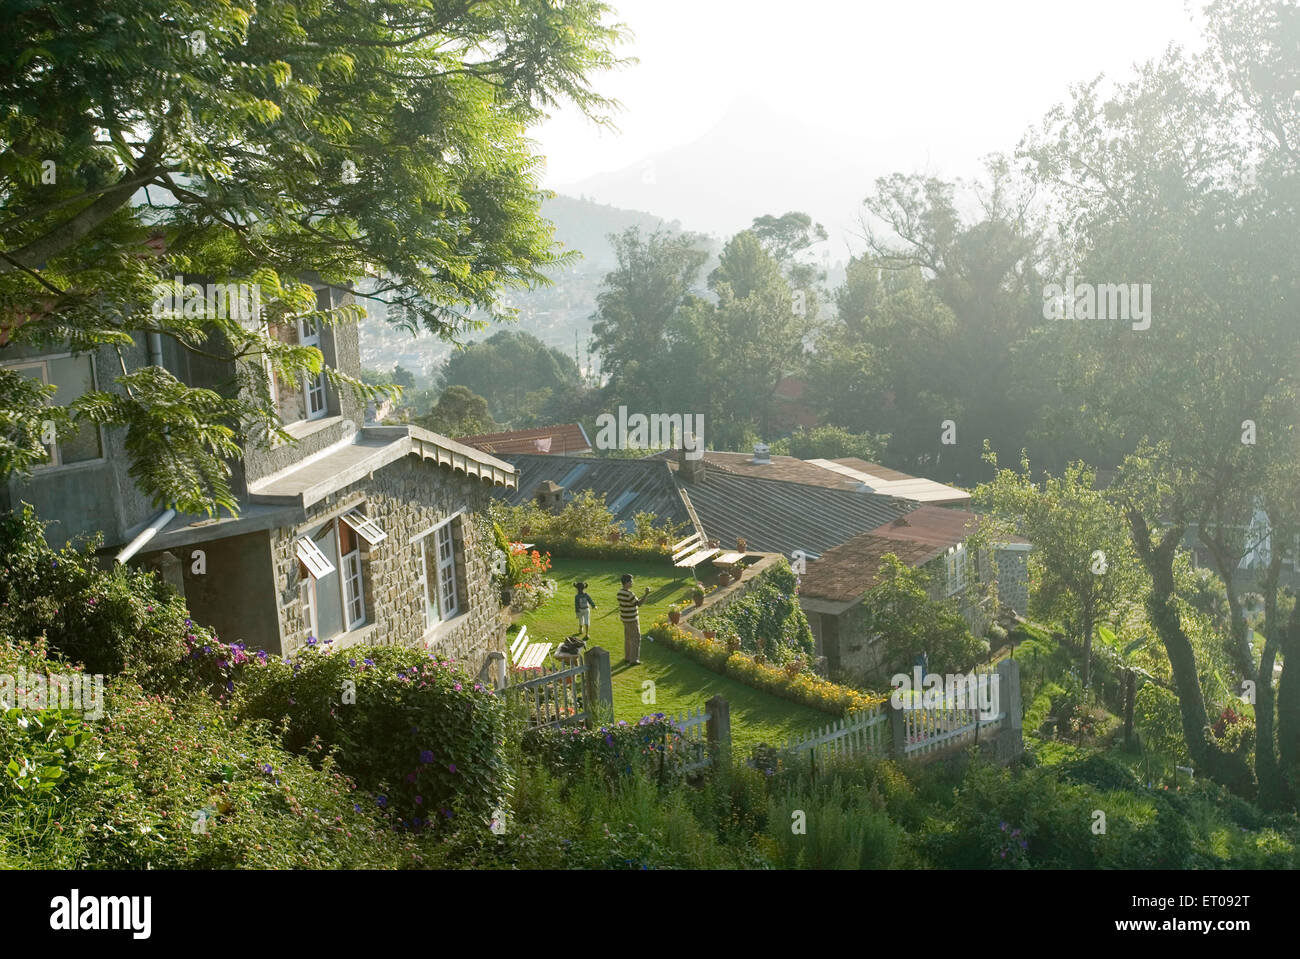 Resorts at Palani hills at 2133 meters above sea level ; Kodaikanal popularly known as Kodai ; Tamil Nadu ; India - Stock Image